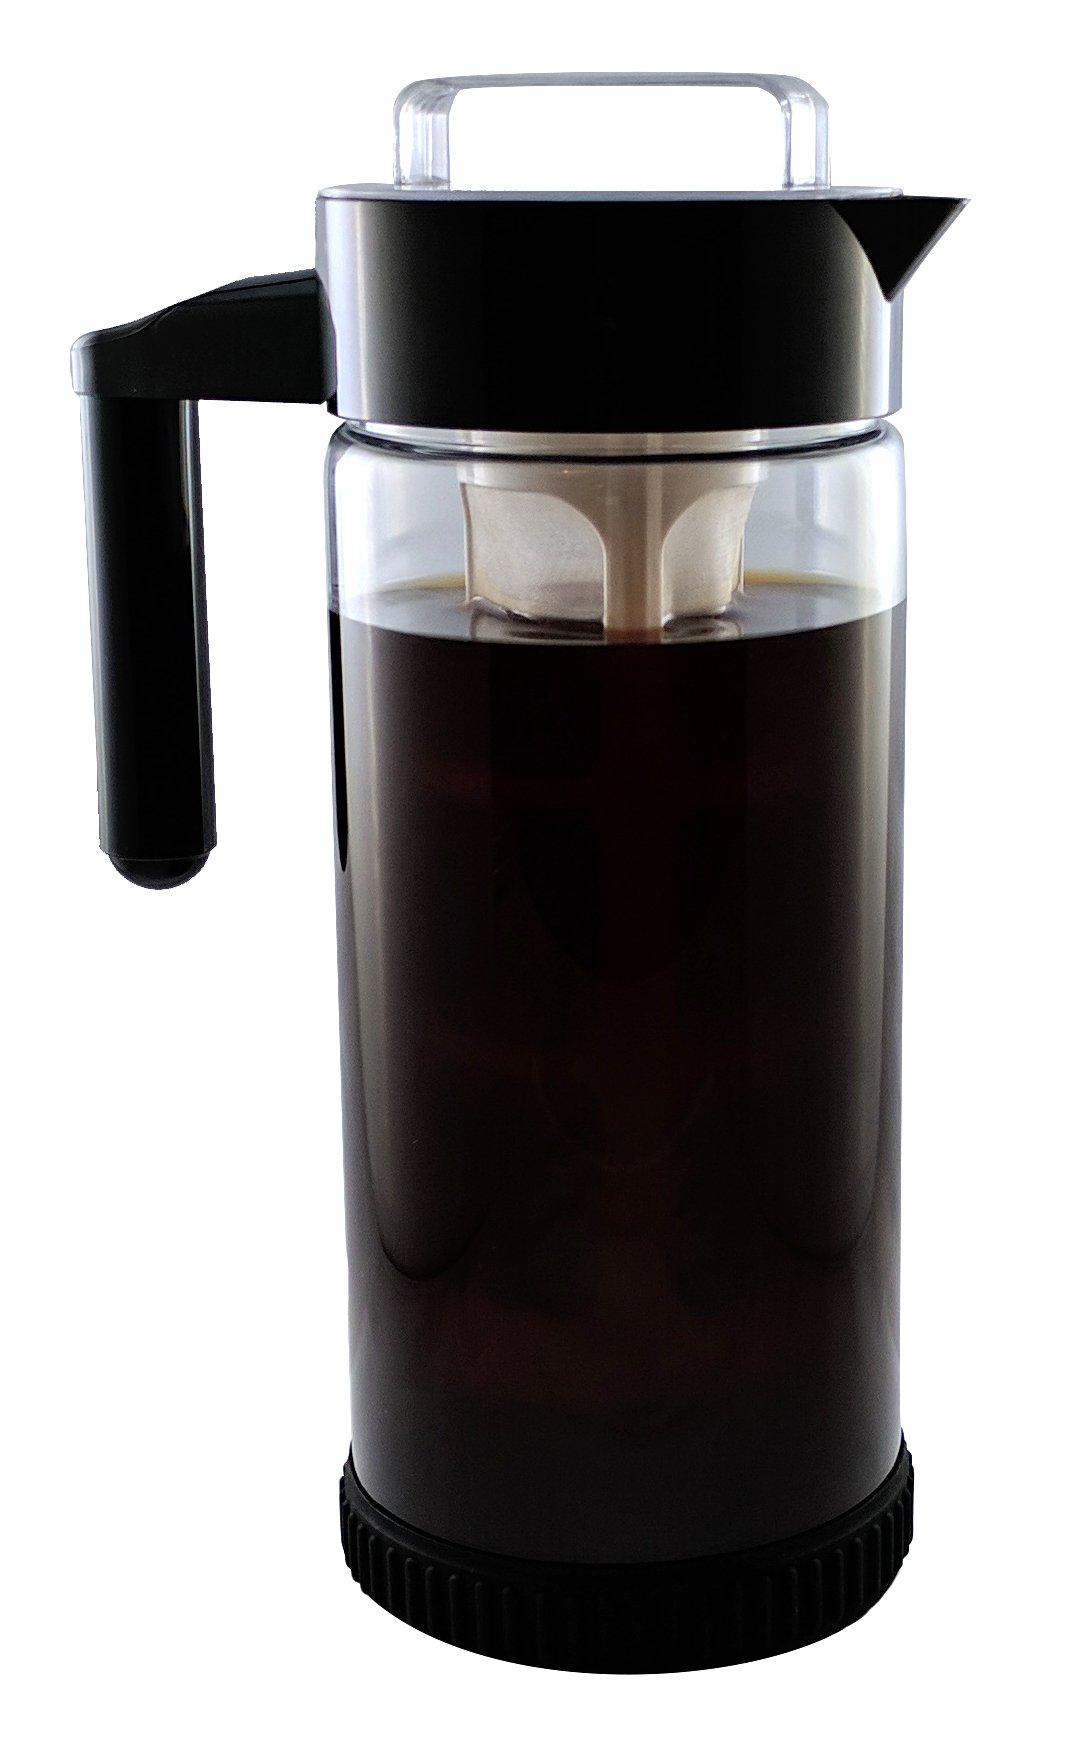 3 in 1 Cold Brew Iced Coffee Maker with Non-Slip Base   Iced Tea Maker   Fruit Infusion Pitcher  ''A'' FakeSpot Rating   Premium Borosilicate Glass   BPA Free   Dishwasher Safe   44oz   BONUS INFUSER